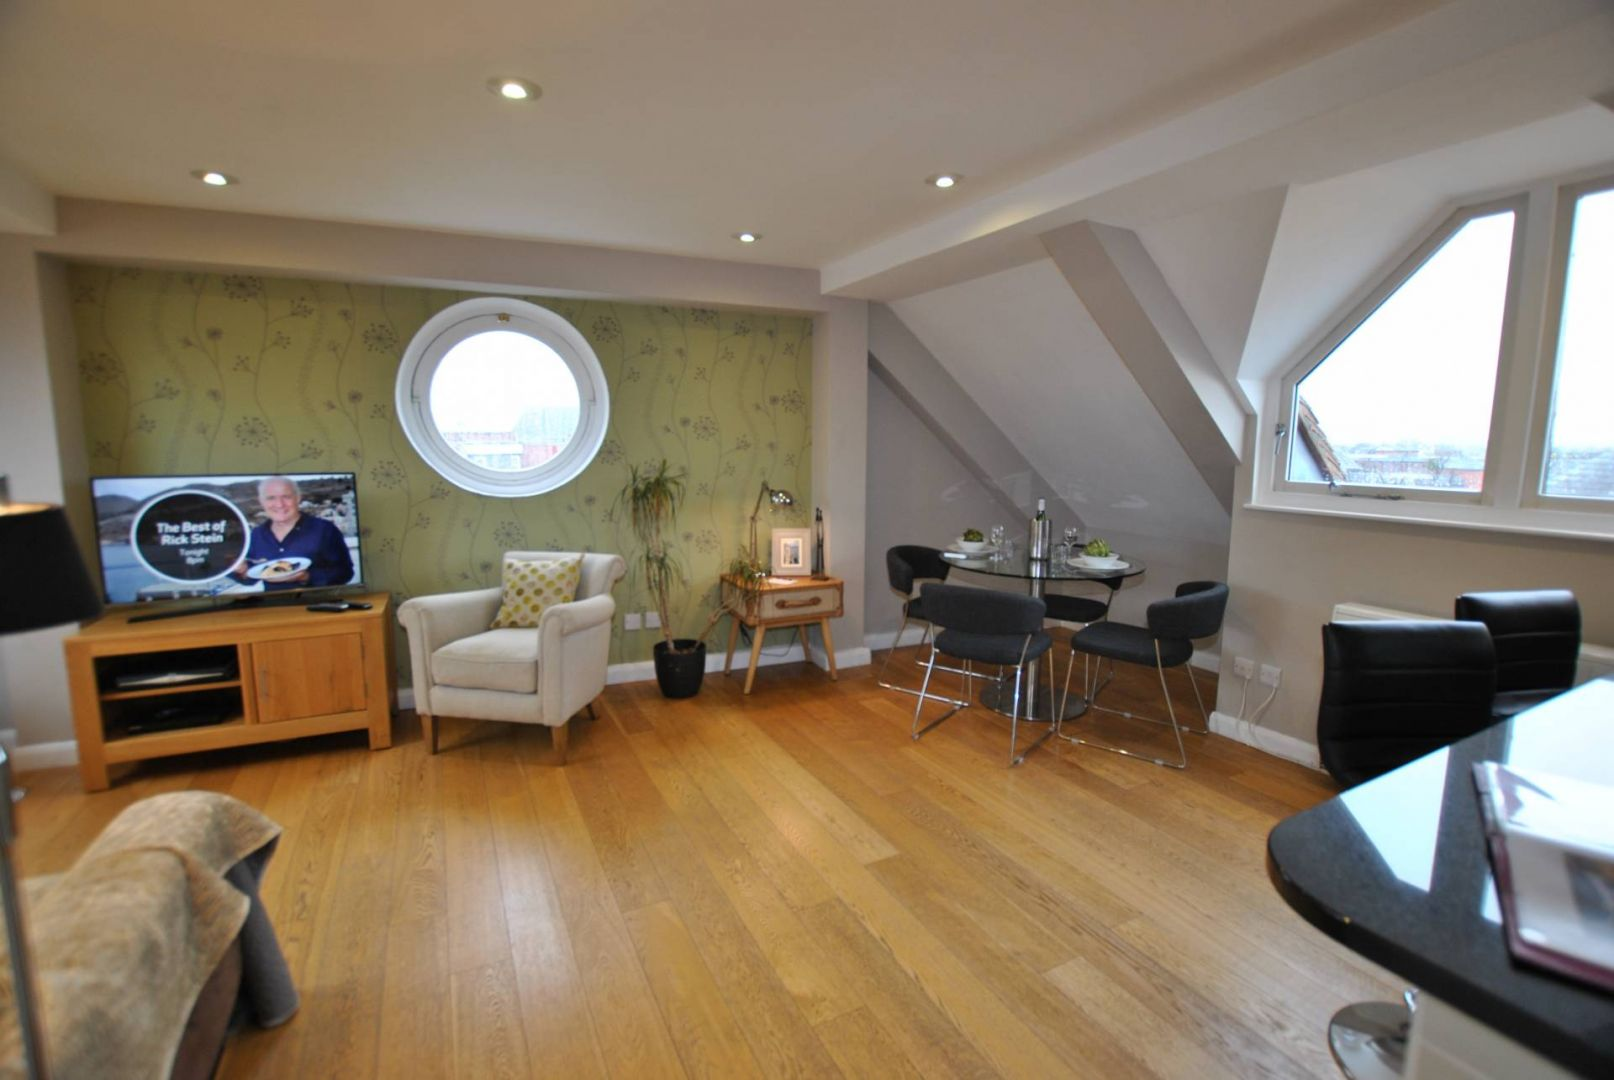 The Courtyard- Penthouse, Windsor SL4 1LD